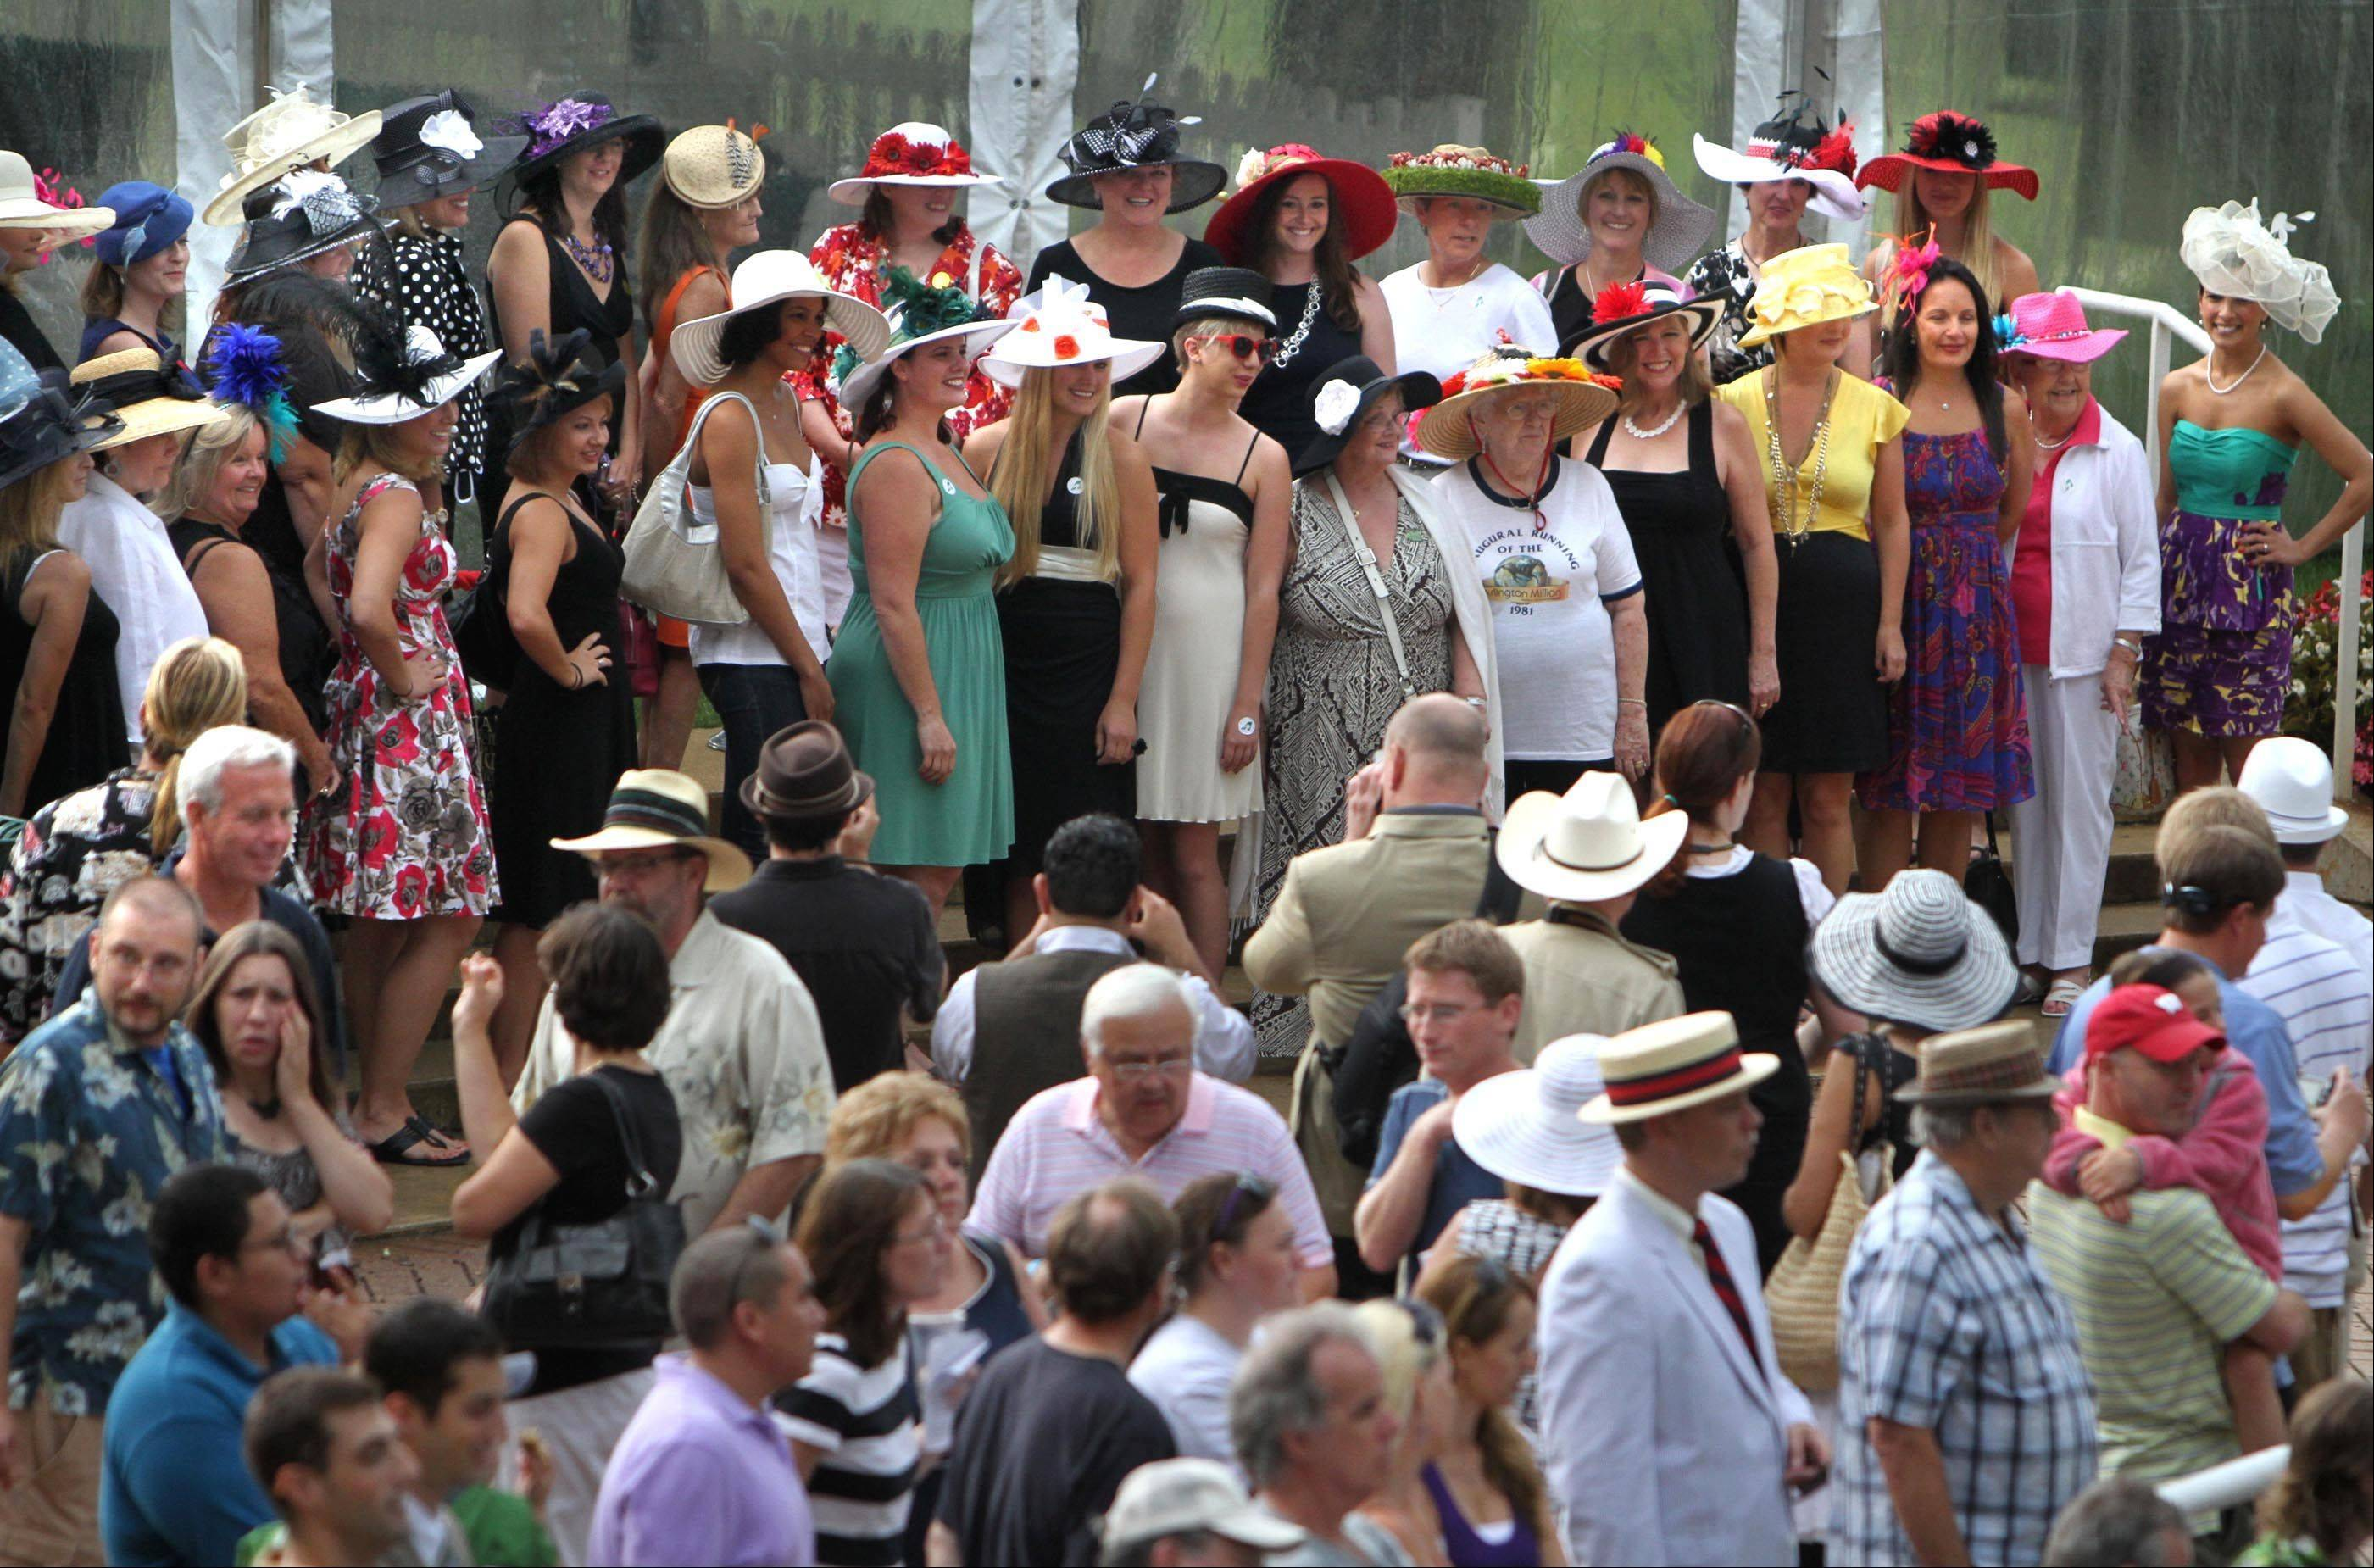 More than 40 women entered the hat contest before the running of the Arlington Million at Arlington Park on Saturday.